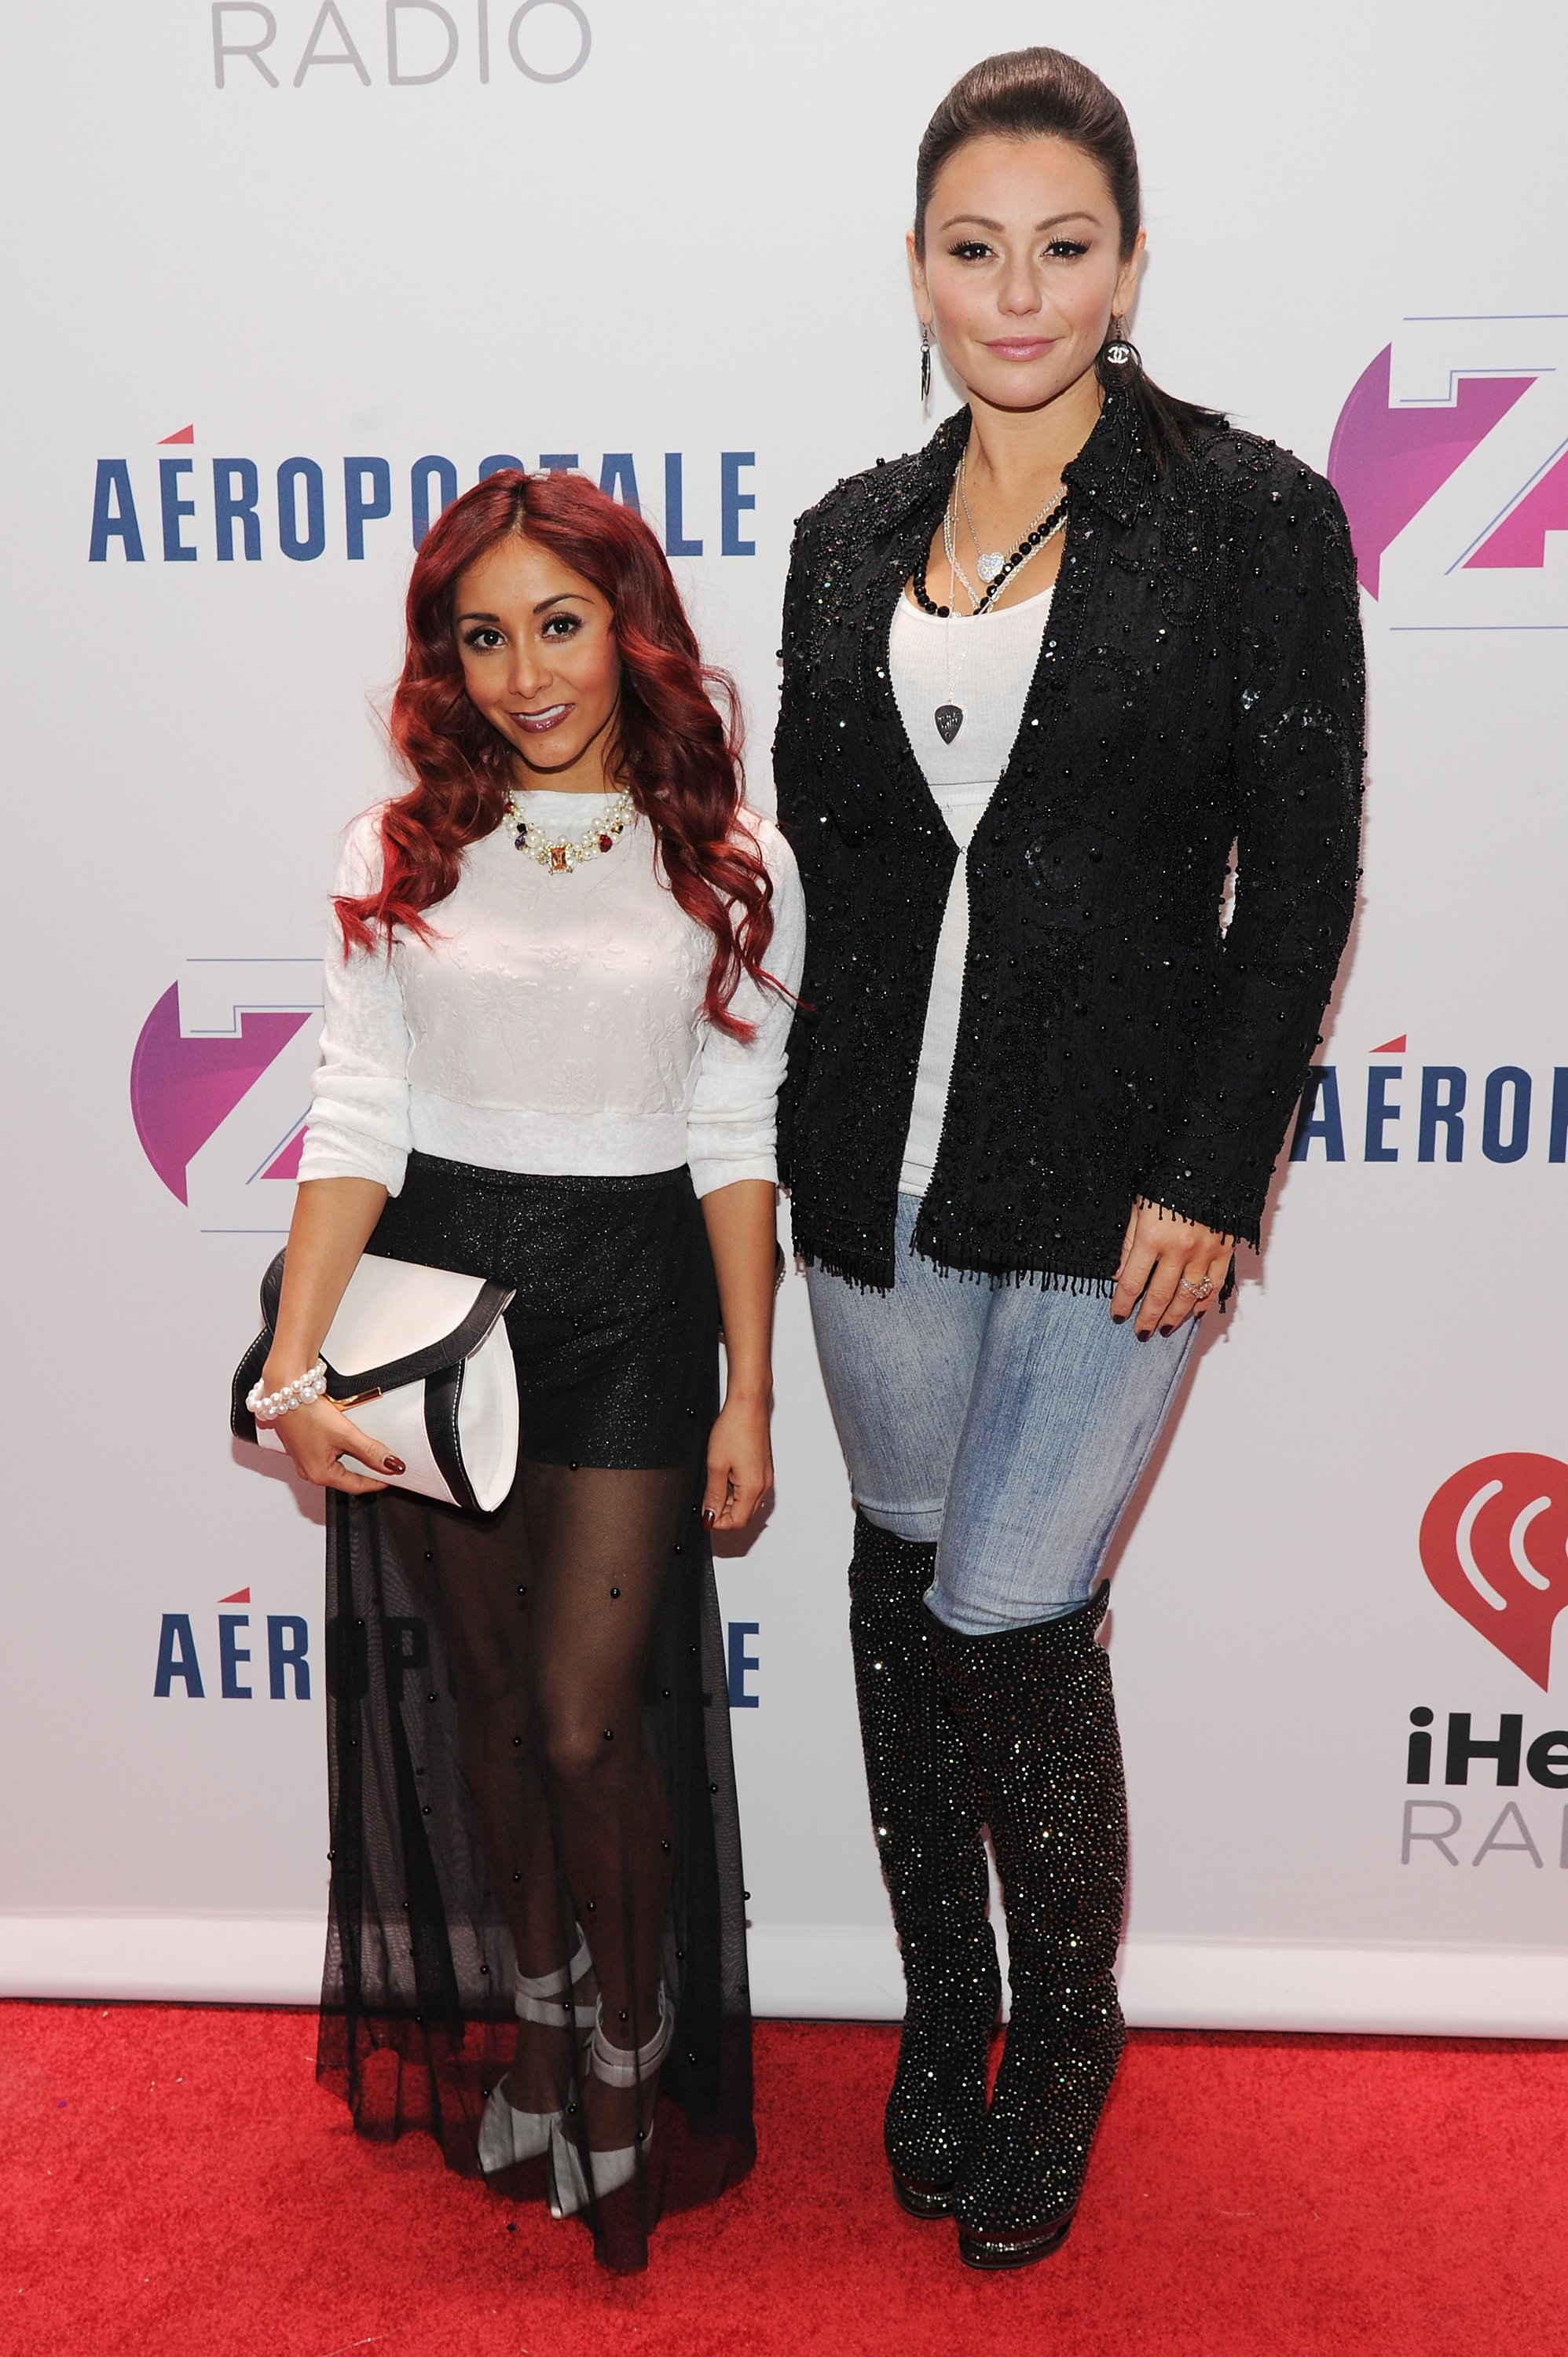 Nicole 'Snooki' Polizzi and Jennifer 'JWOWW' Farley attend Z100's Jingle Ball on December 13, 2013 in New York City